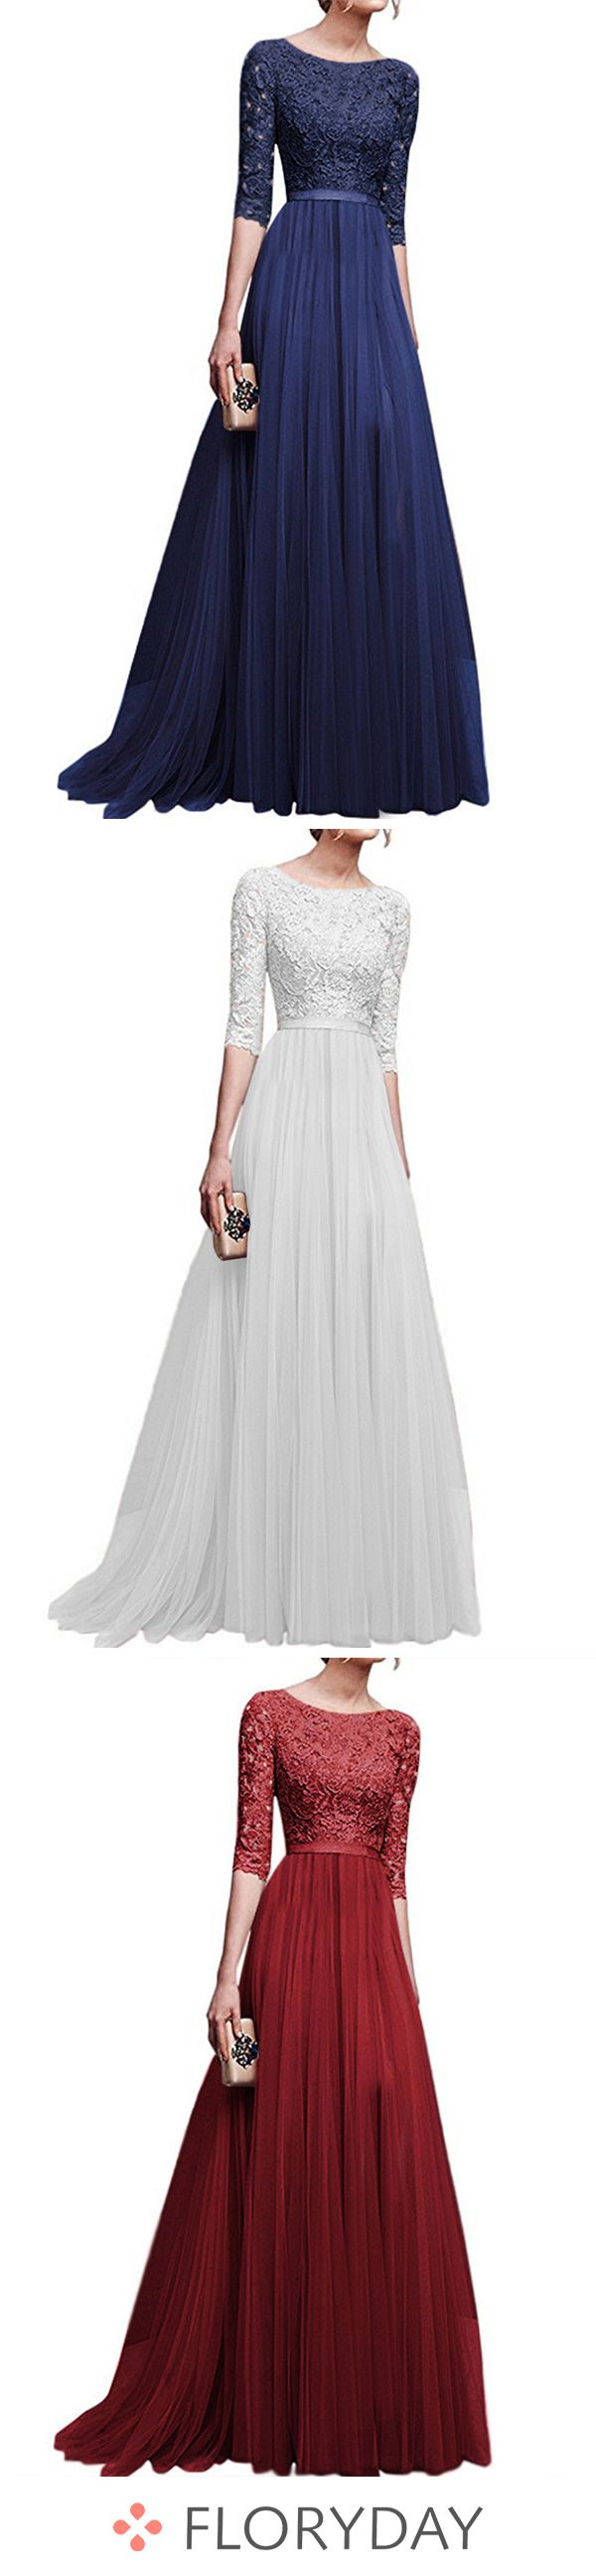 Solid Lace Half Sleeve Maxi A-line Dress 3